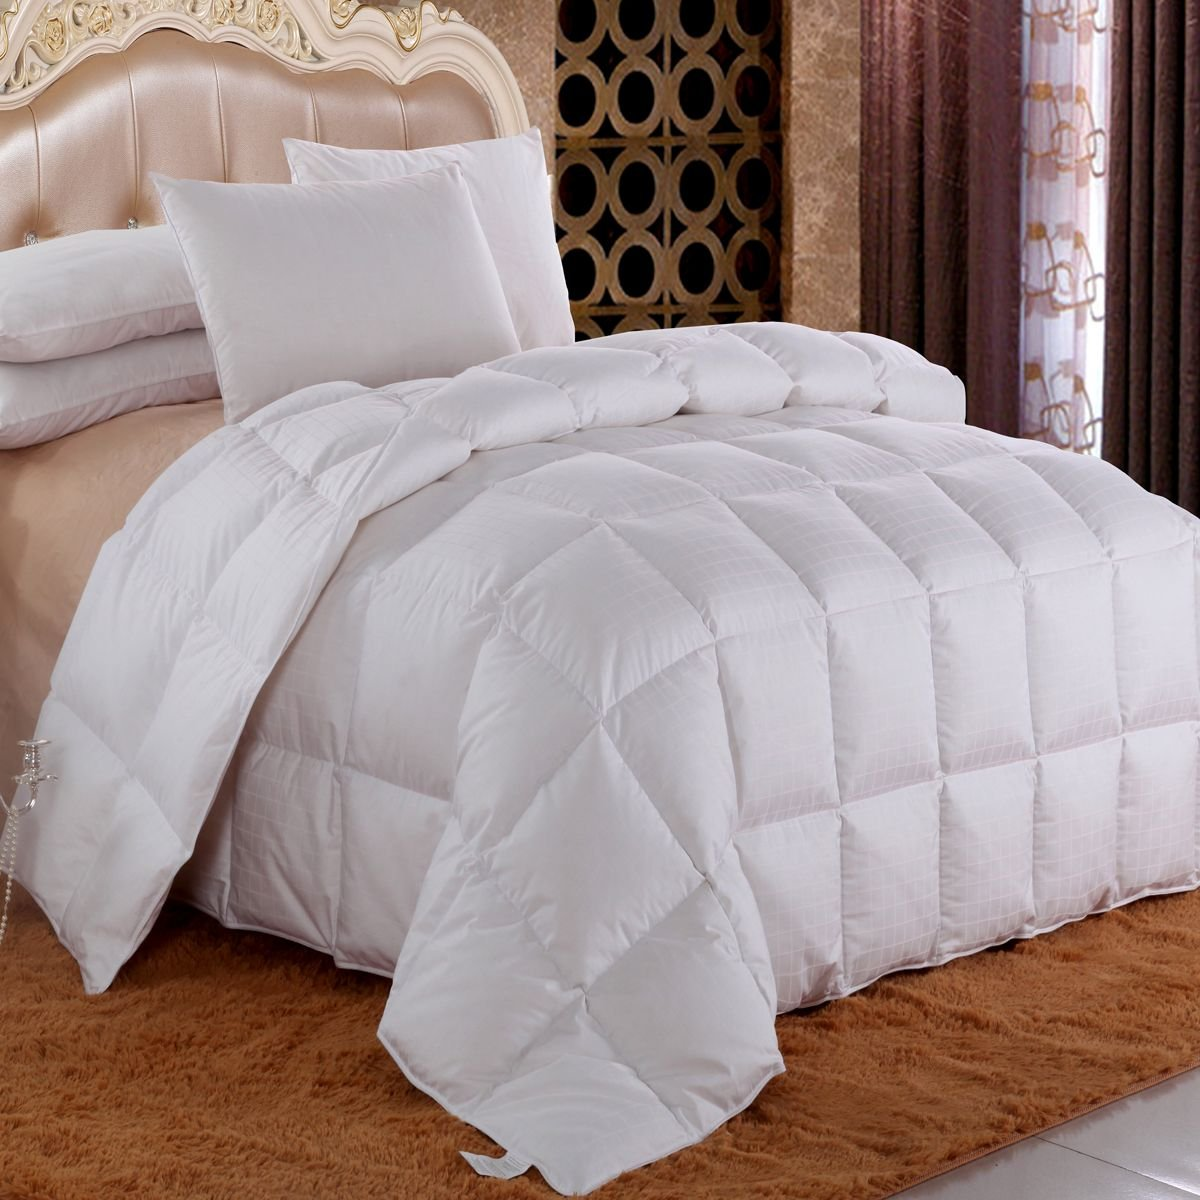 Royal Hotel Dobby Down Comforter 650-FILL-POWER Down-Fill, 100% Egyptian Cotton 300-Thread-Count, California-King Size, Down White